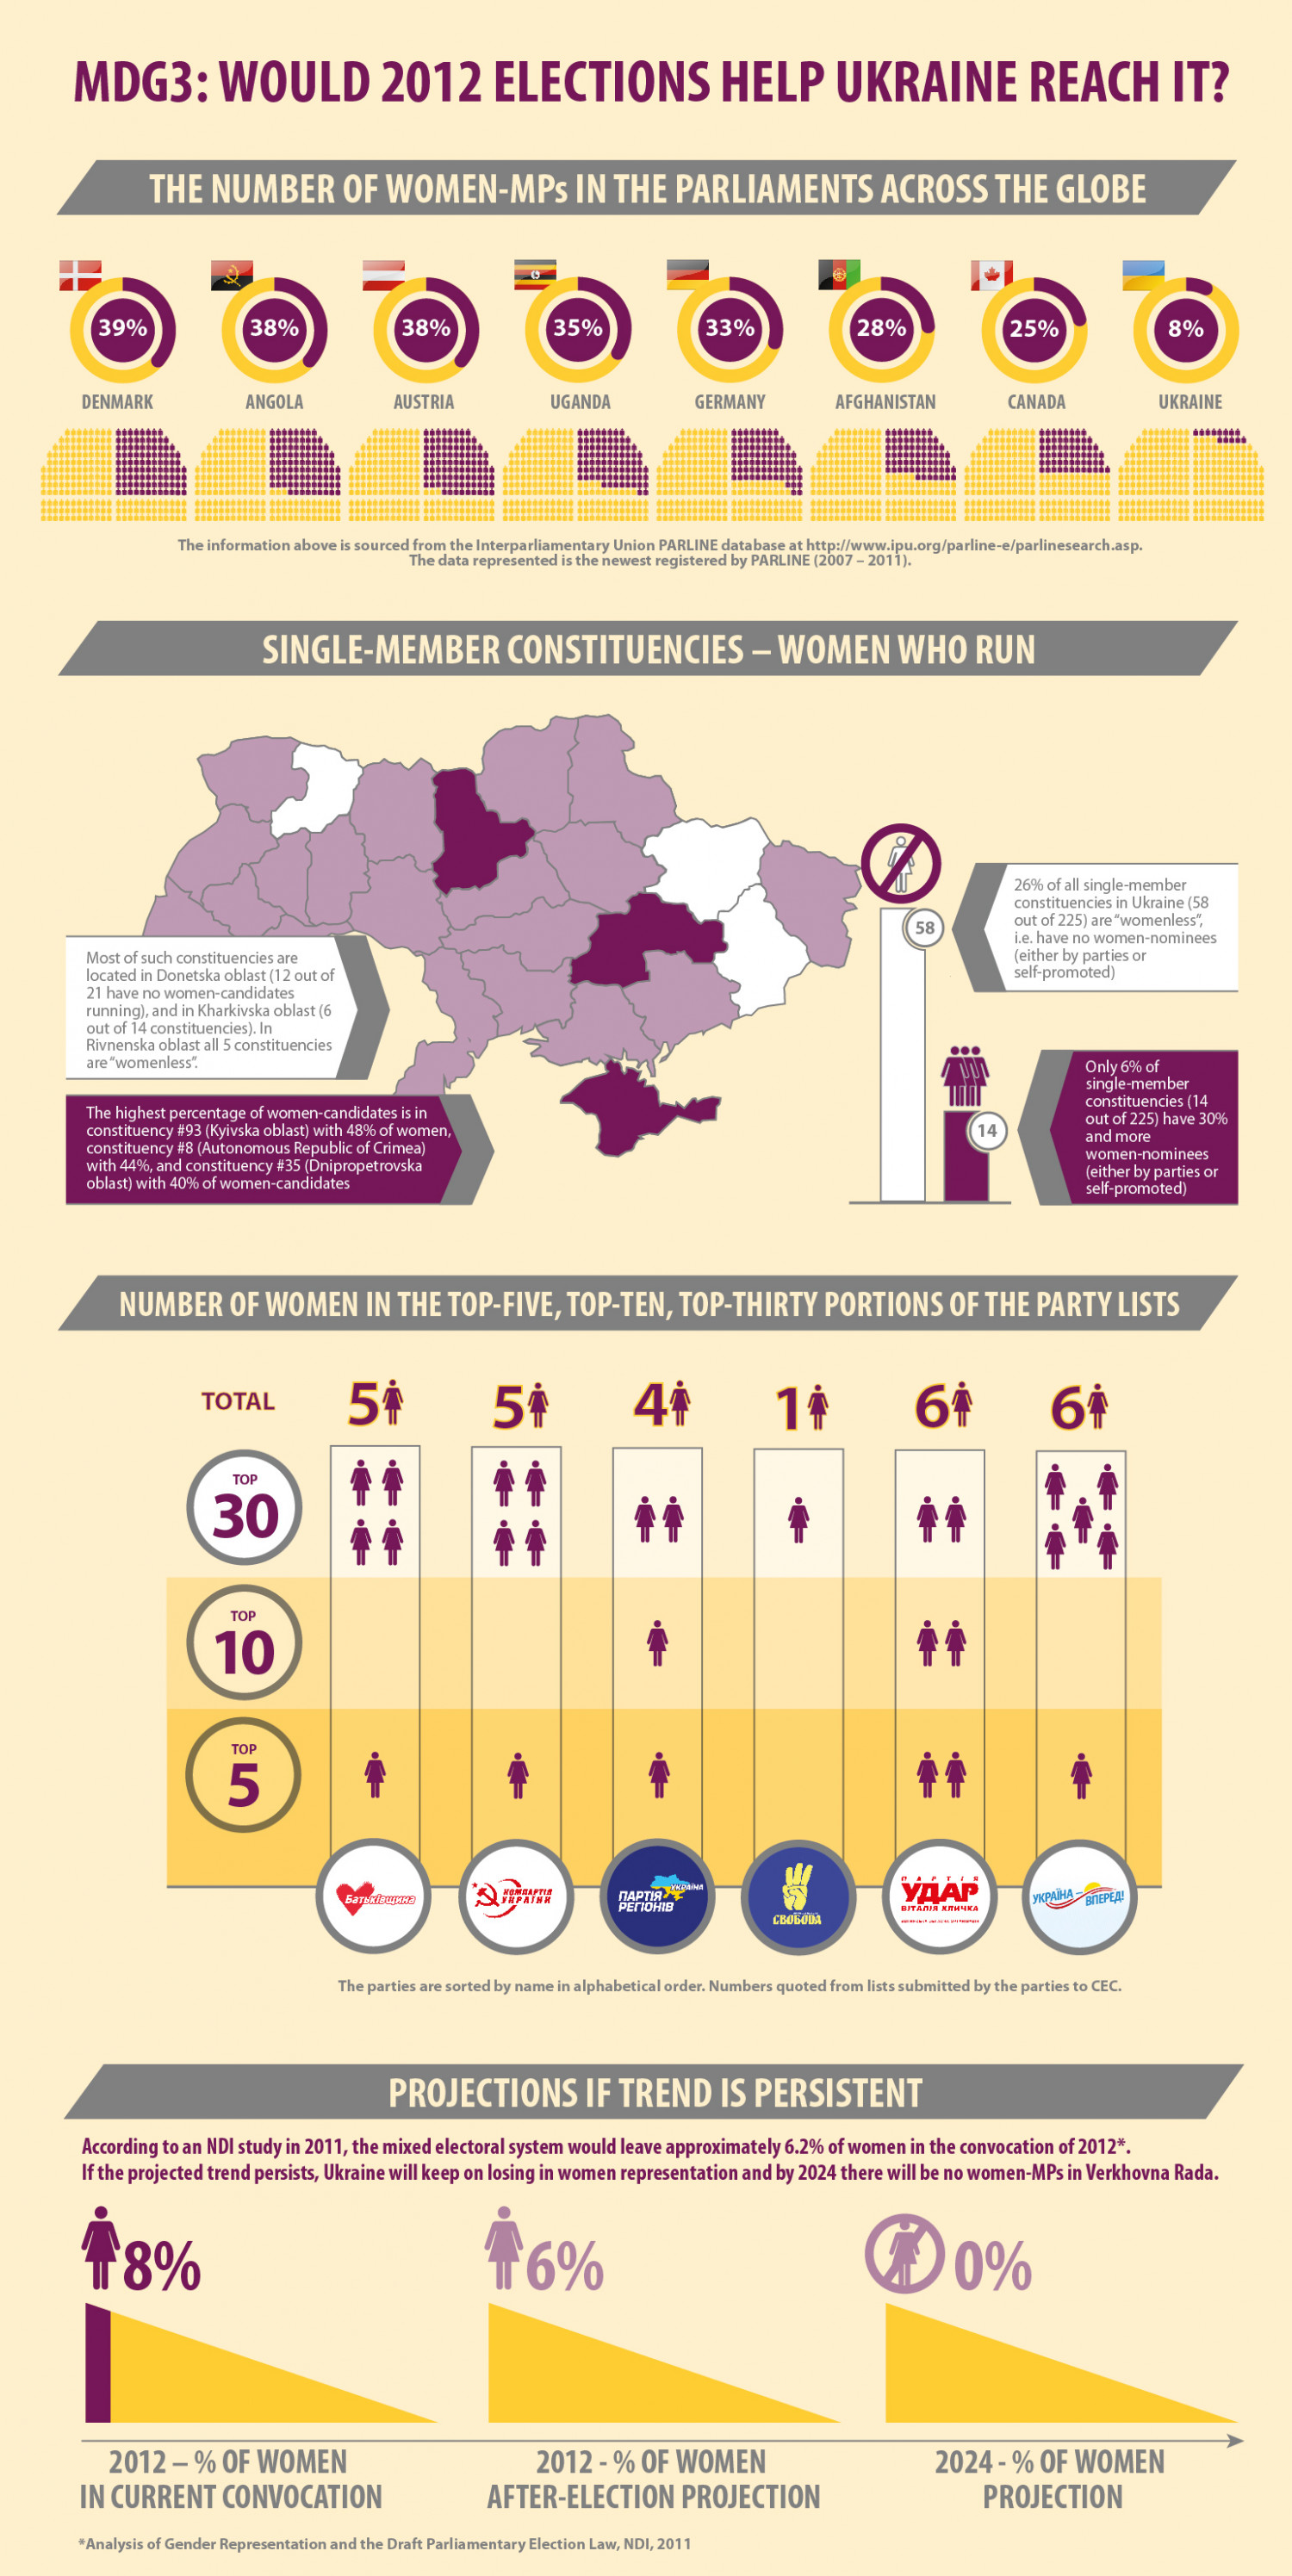 MDG 3: Would 2012 Elections Help Ukraine Reach It? Infographic